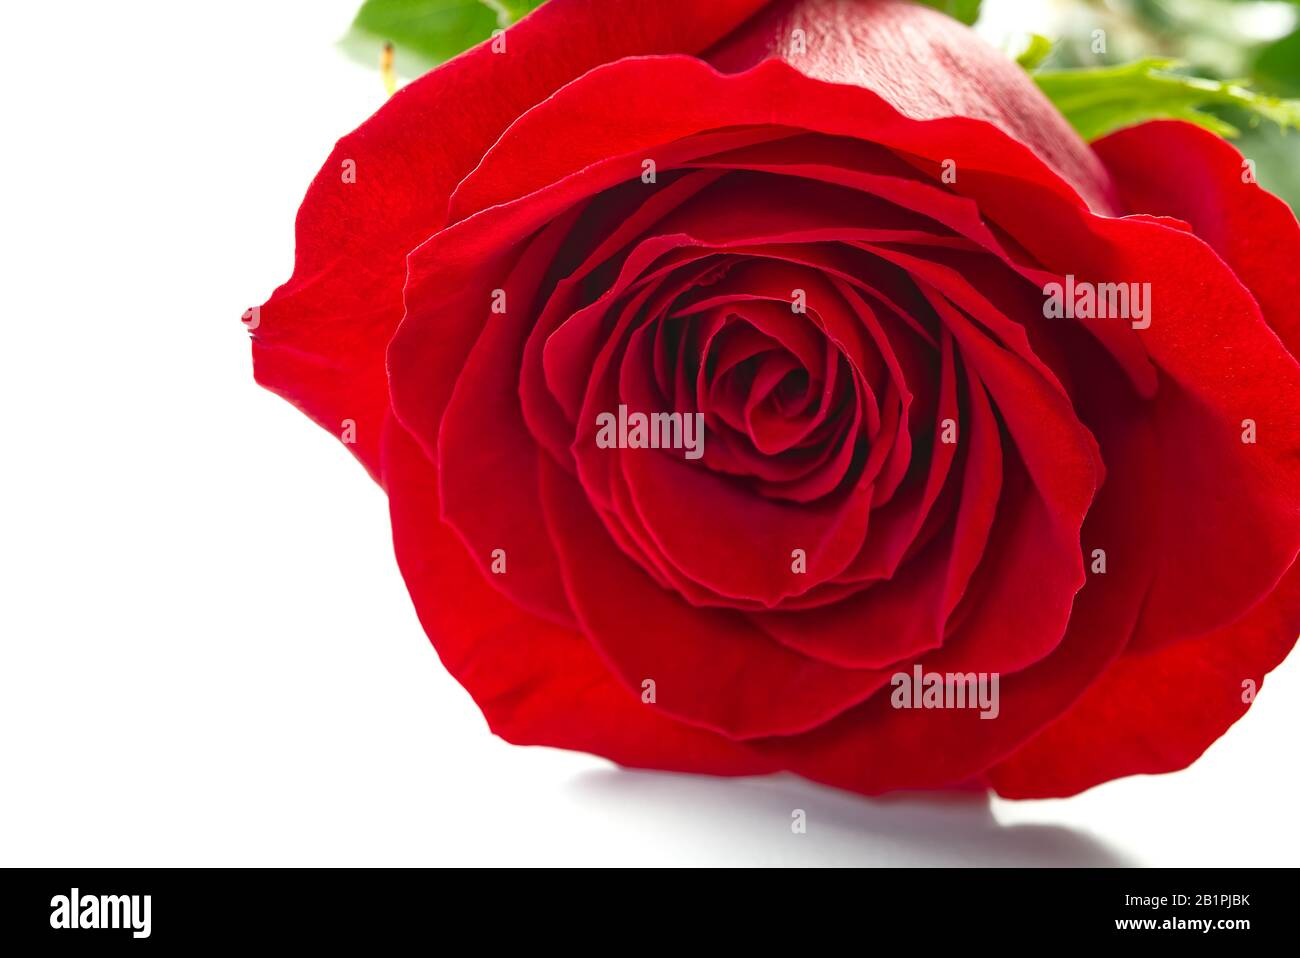 The red rose flower close up shoot. Can be used for background, poster or postcard. Rose flower isolated on white. Stock Photo